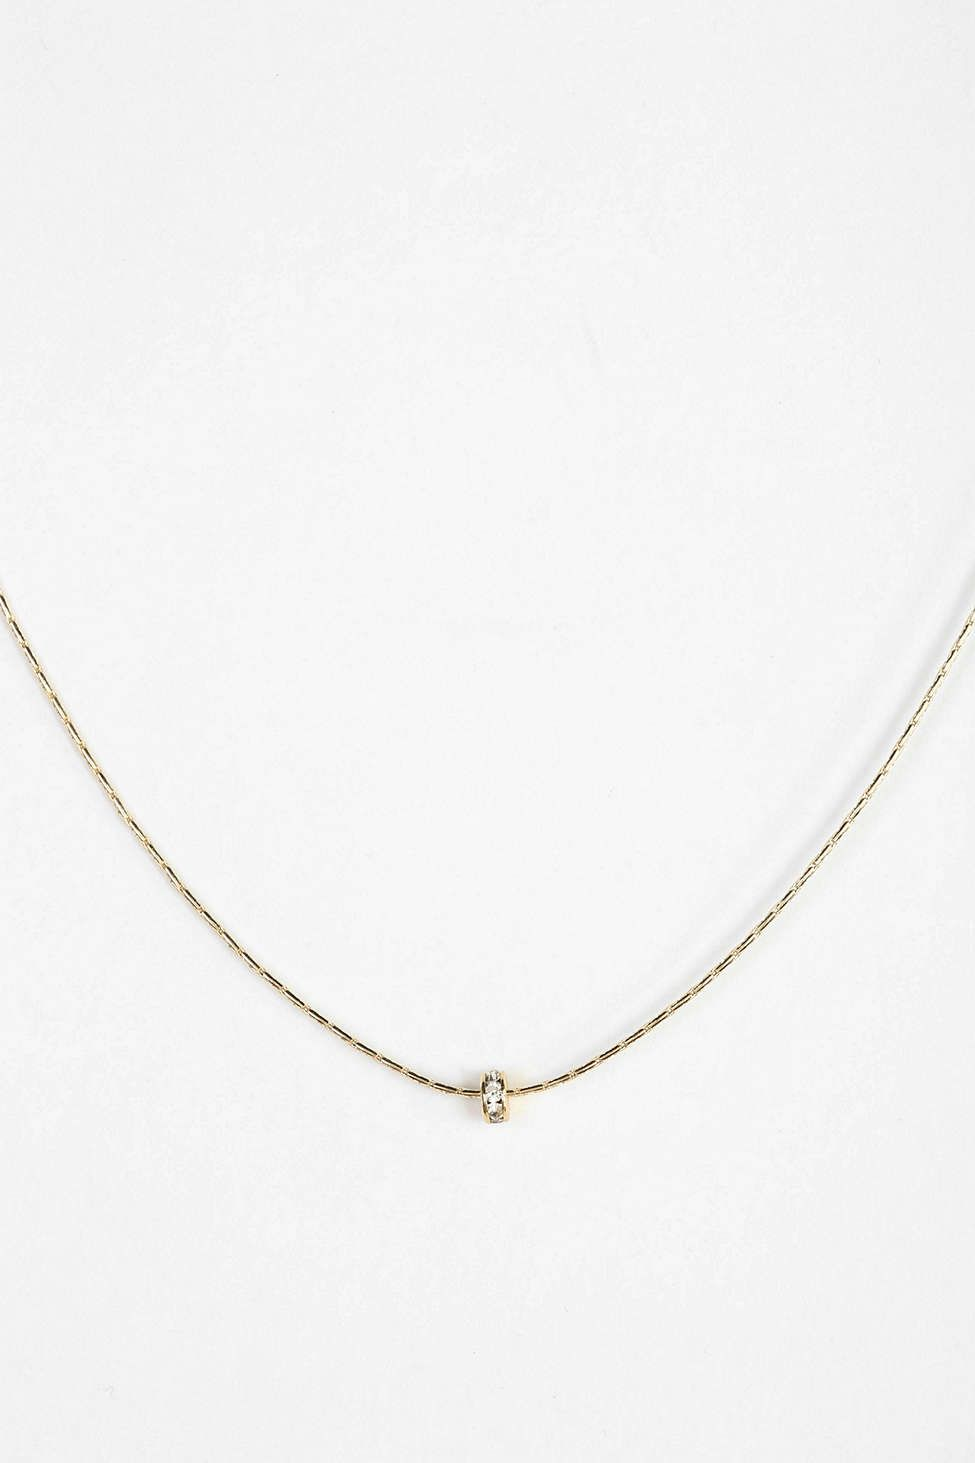 Little Light Necklace - Urban Outfitters